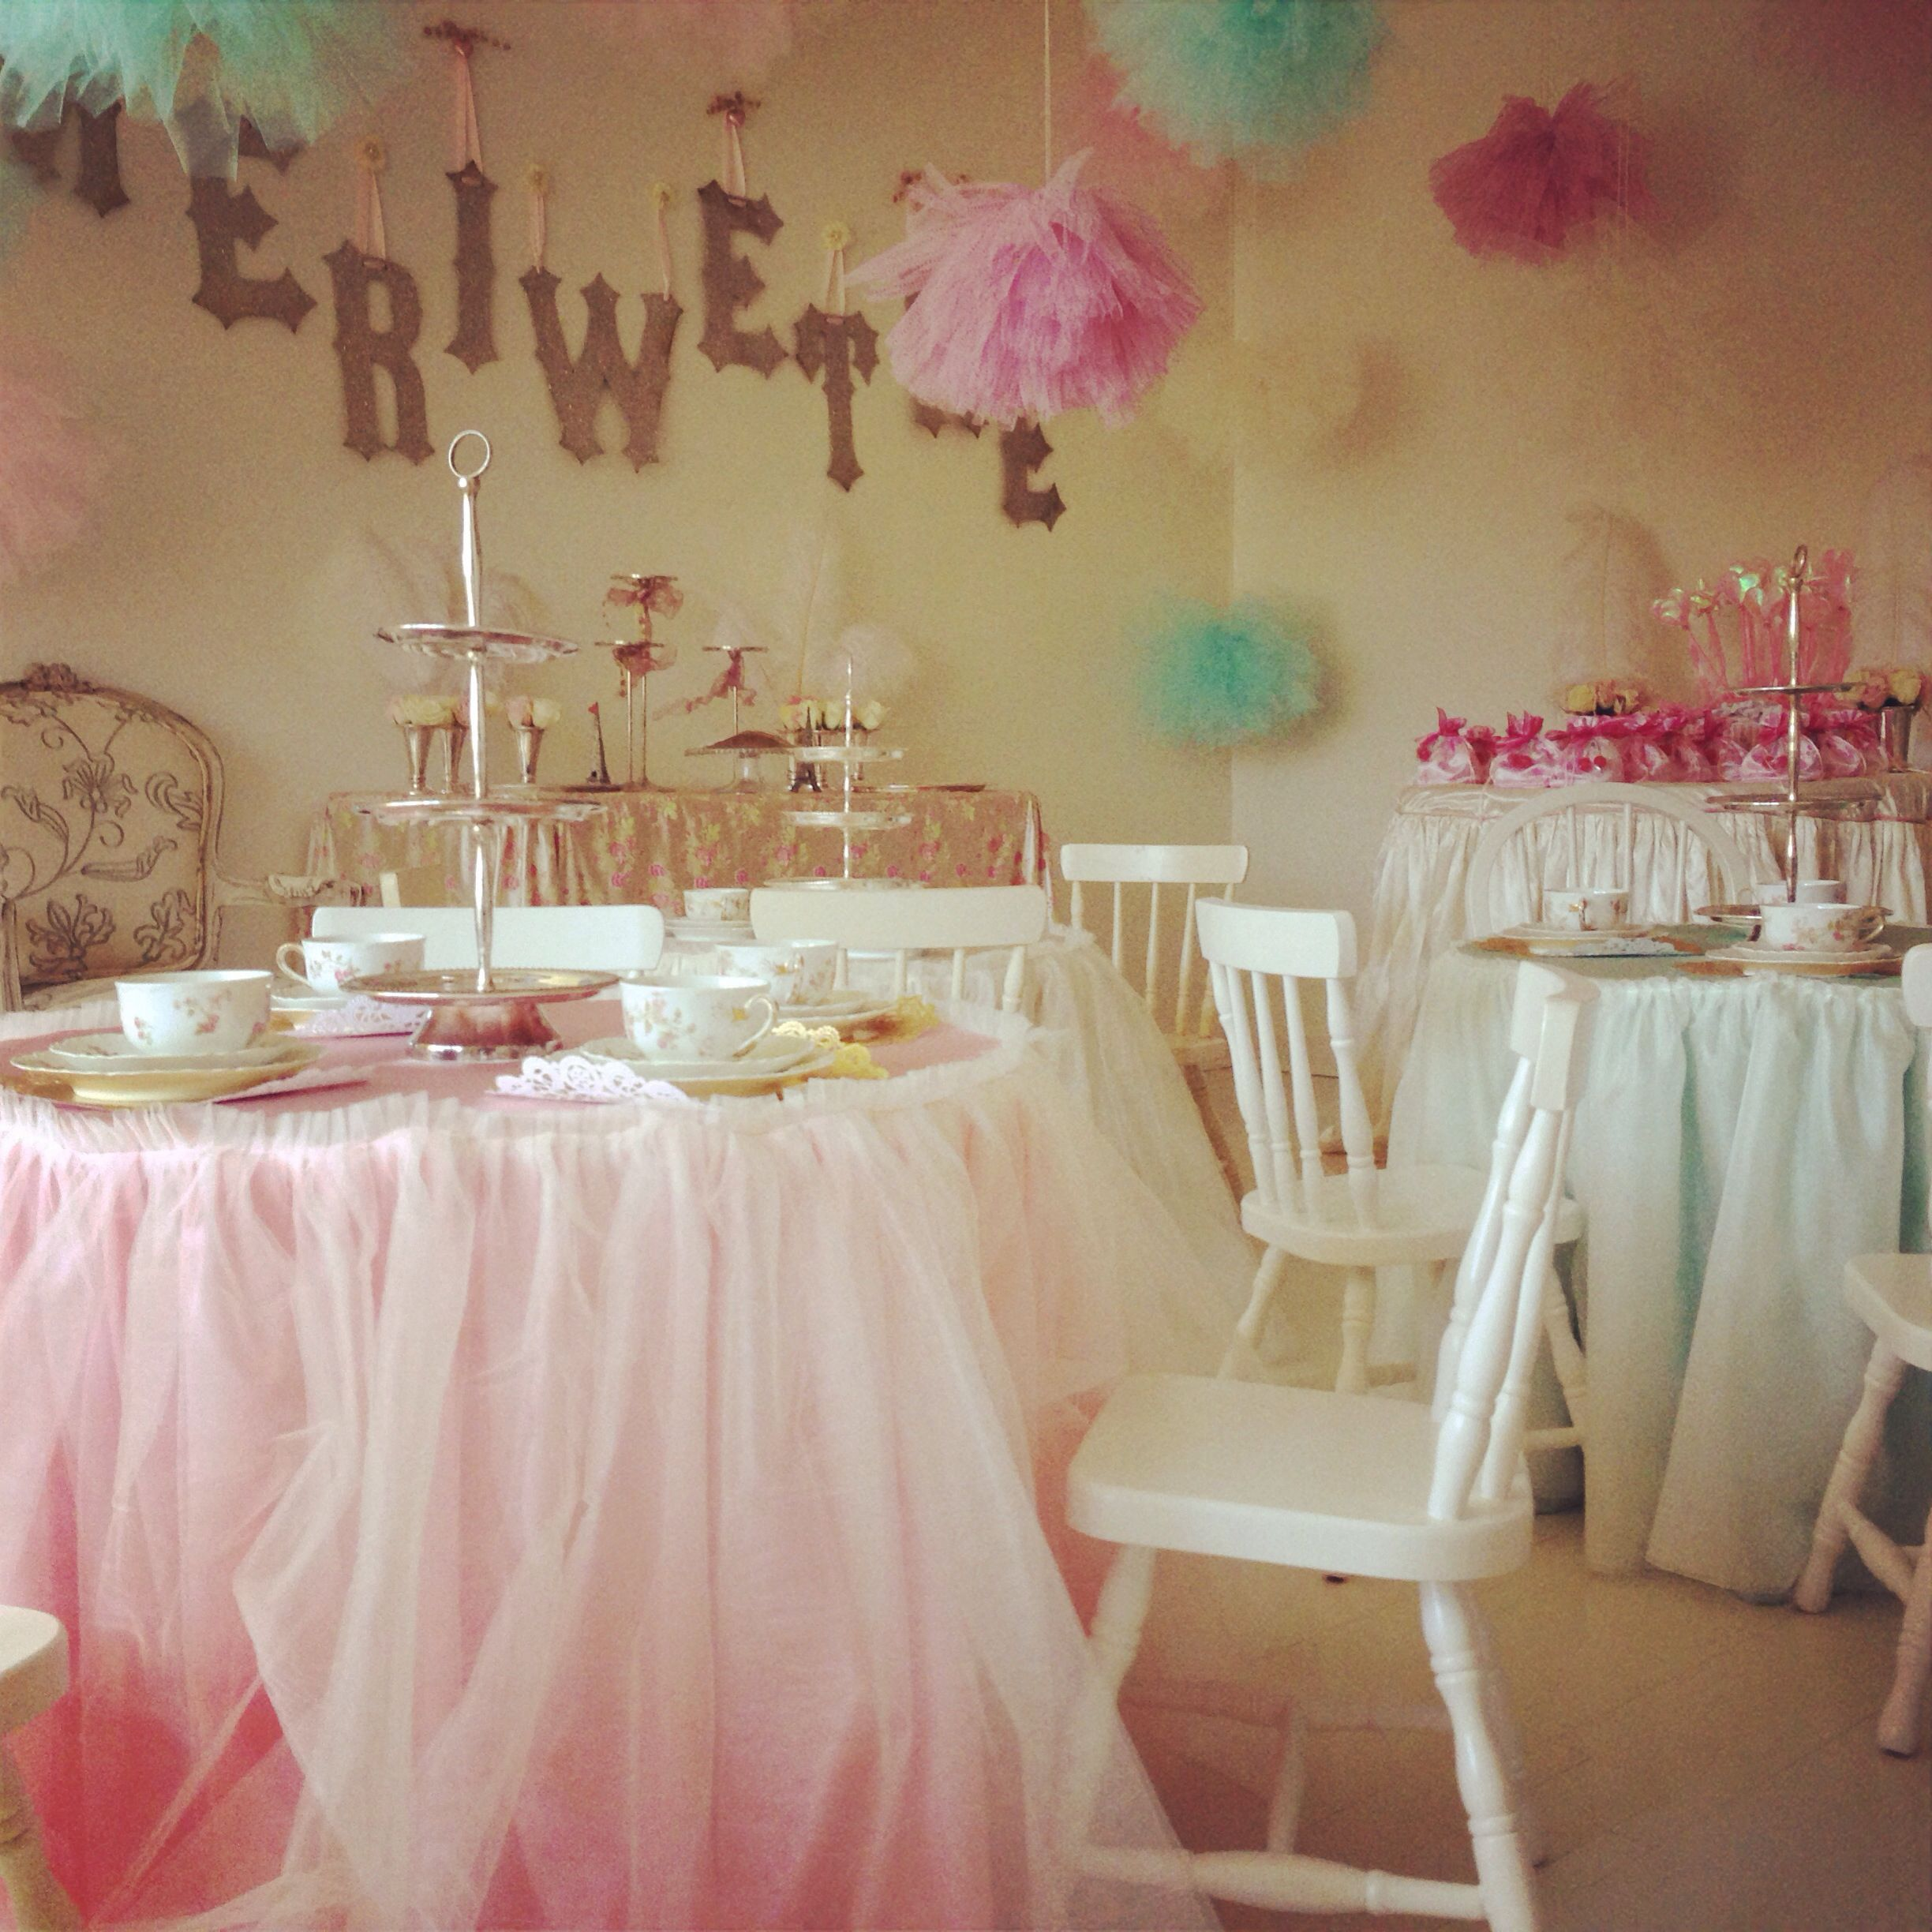 Marie Antoinette Tea Party Decorations Tulle Tableskirts Tulle Balls Princess 3 Rd Birthday Glitter Le Tea Party Decorations Tea Party Birthday Tulle Table